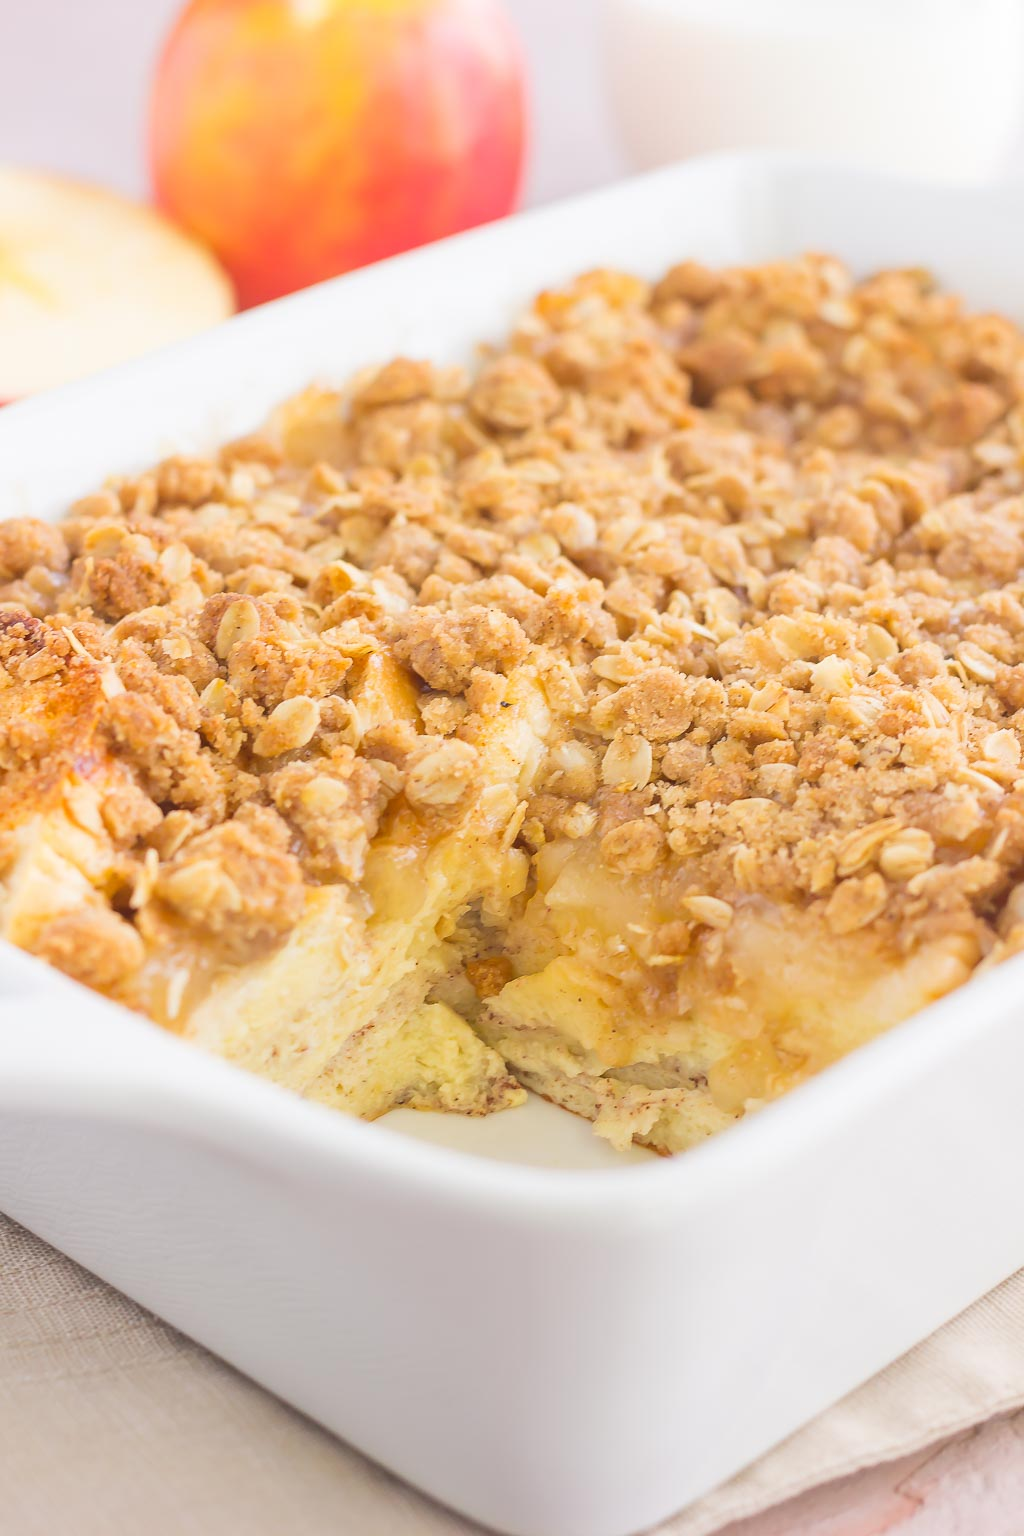 This Apple Pie French Toast Bake is an easy, make-ahead breakfast that captures the flavor of fall. Filled with slices of french bread, sweet apple pie filling, and topped with a crispy streusel, this dish is perfect for everyone to enjoy!